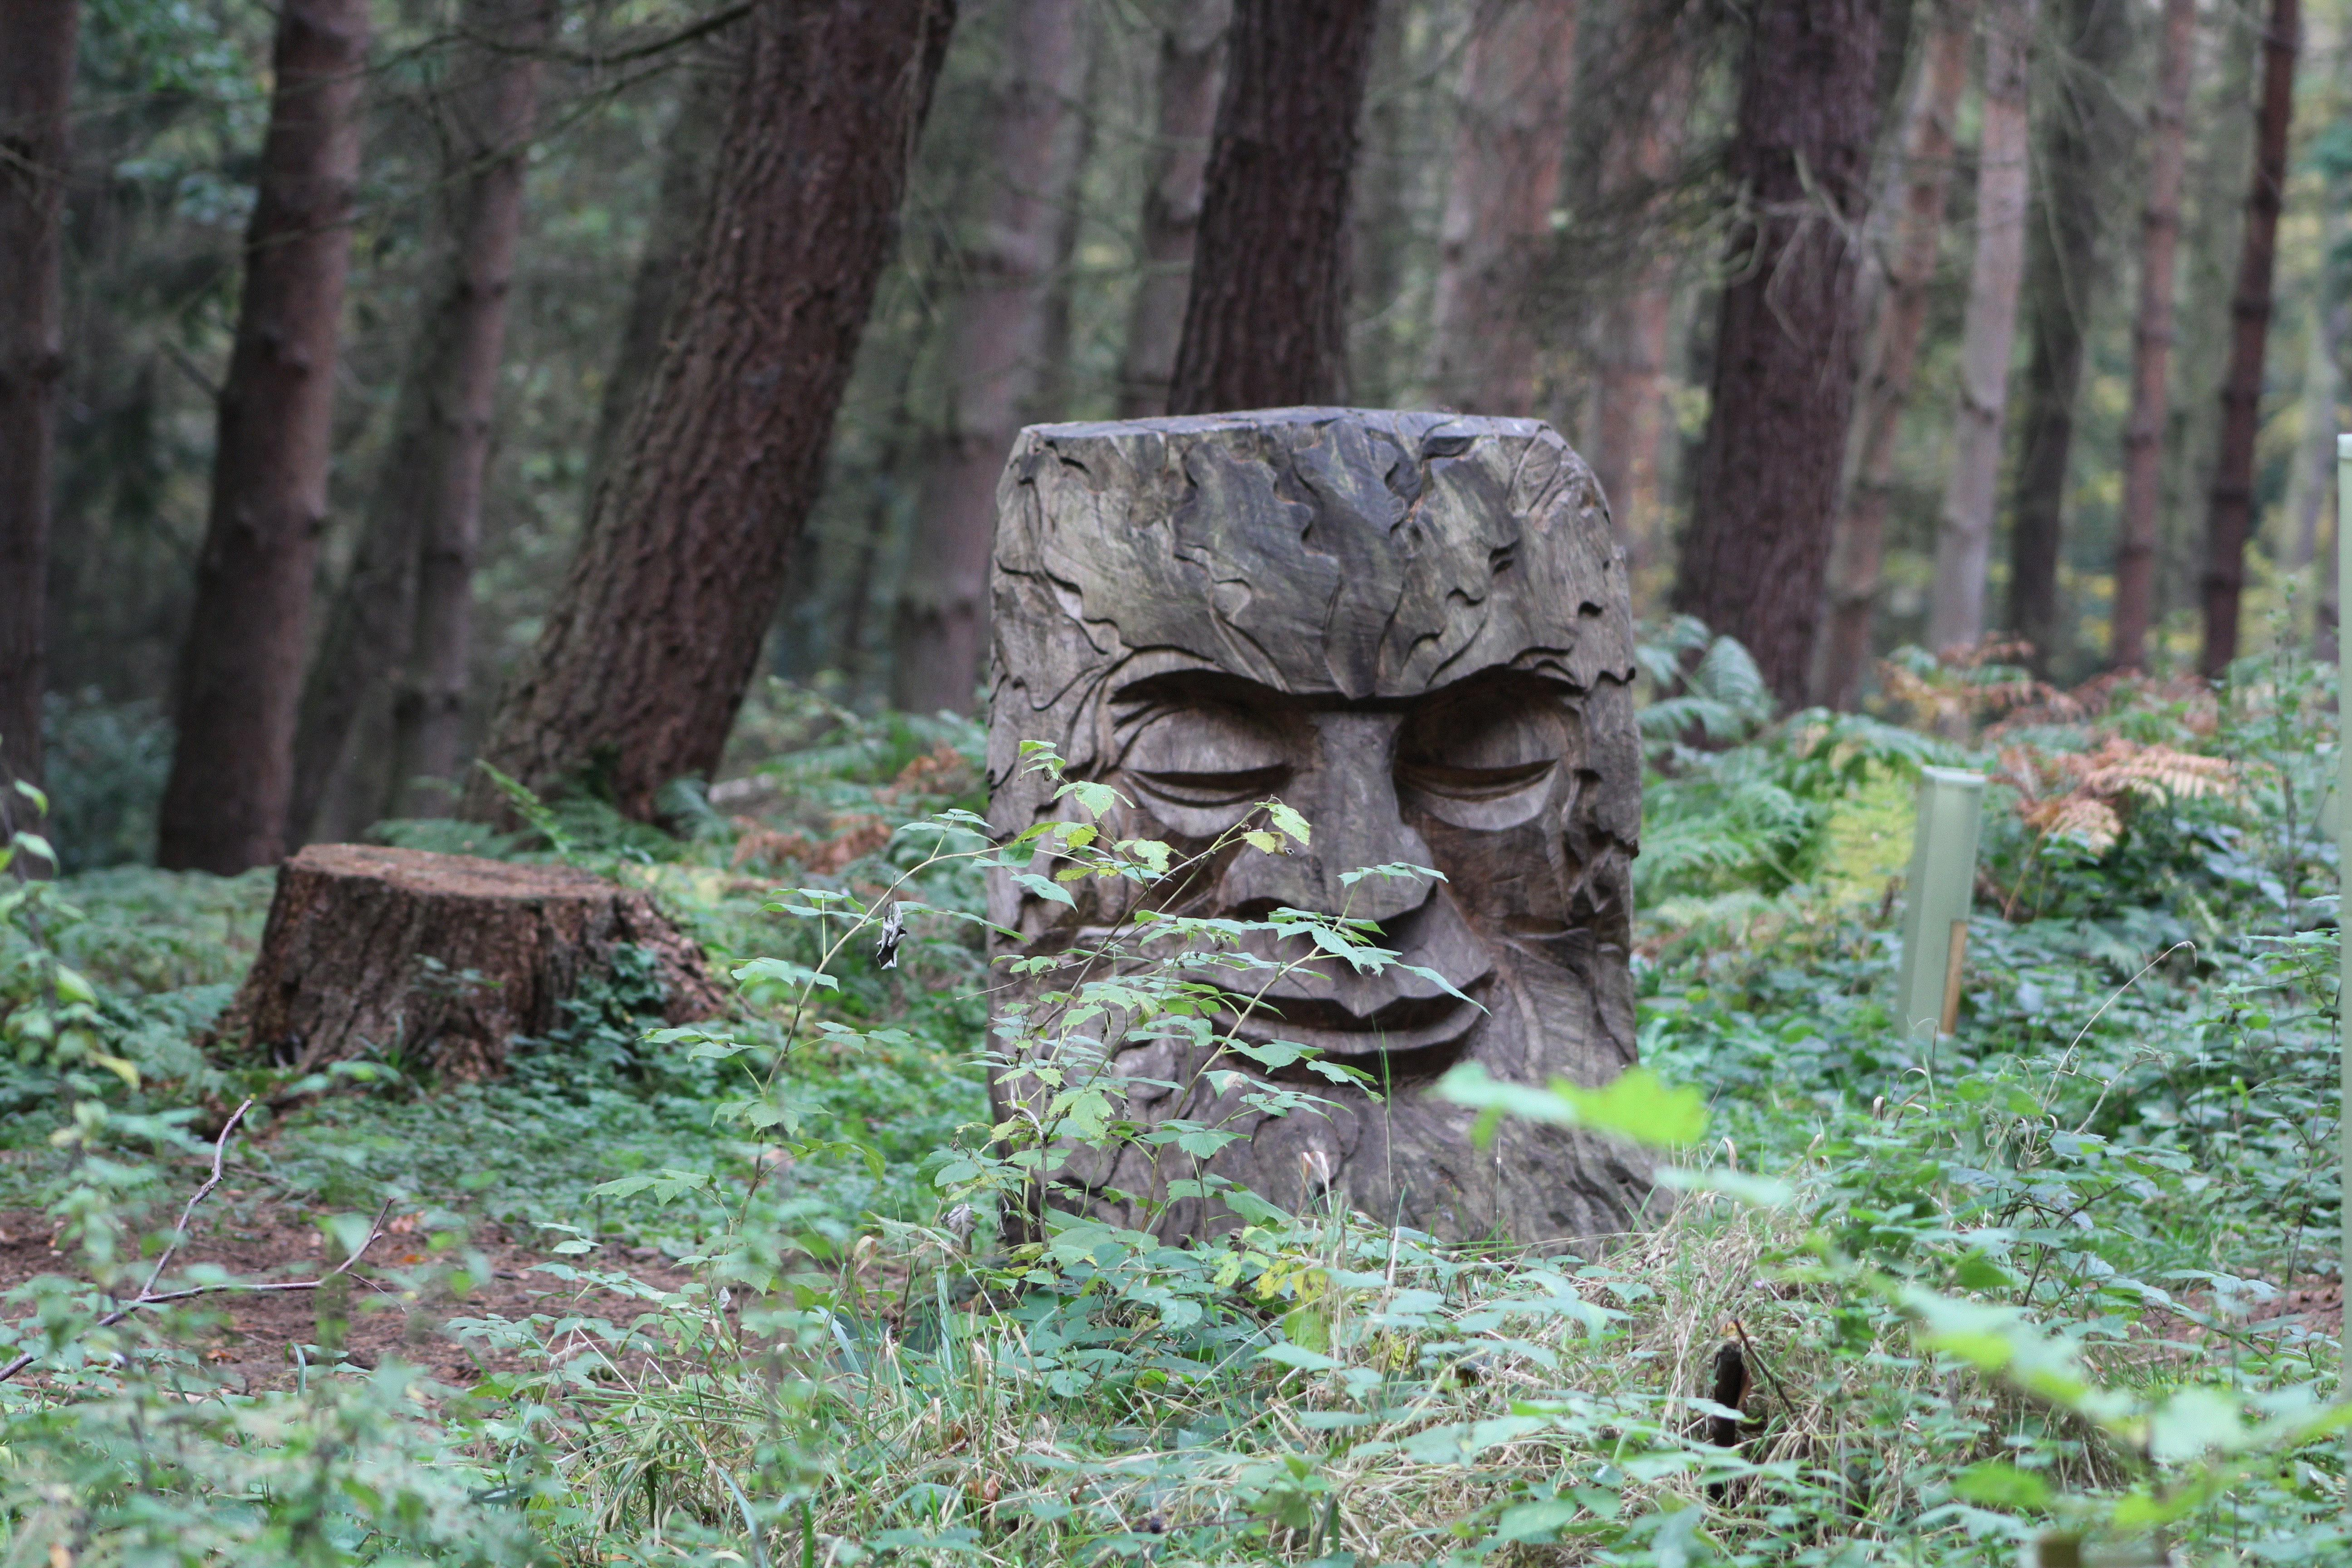 The trunk of a felled tree sculpted into a face